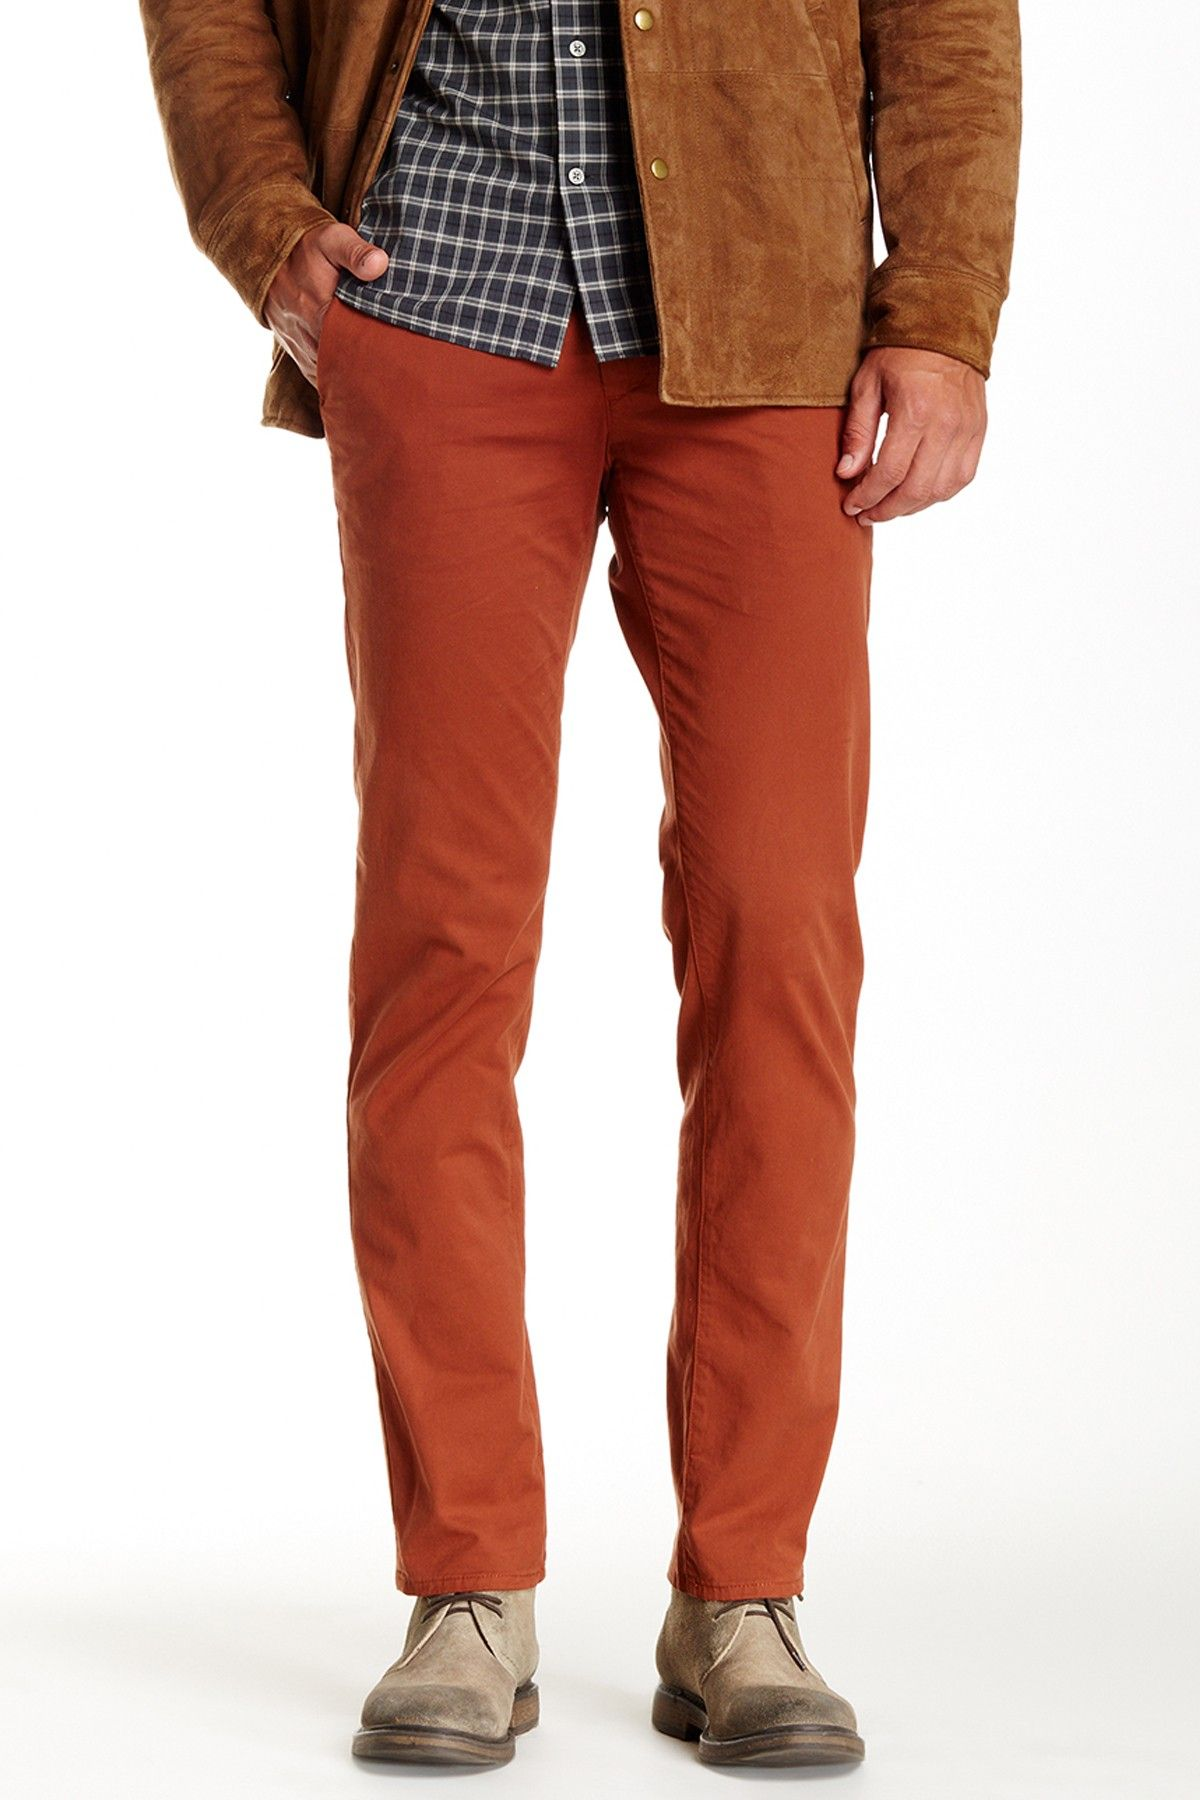 205324bd6d Love these Rust Colored AG Slim Leg Pants | For the Guys in 2019 ...